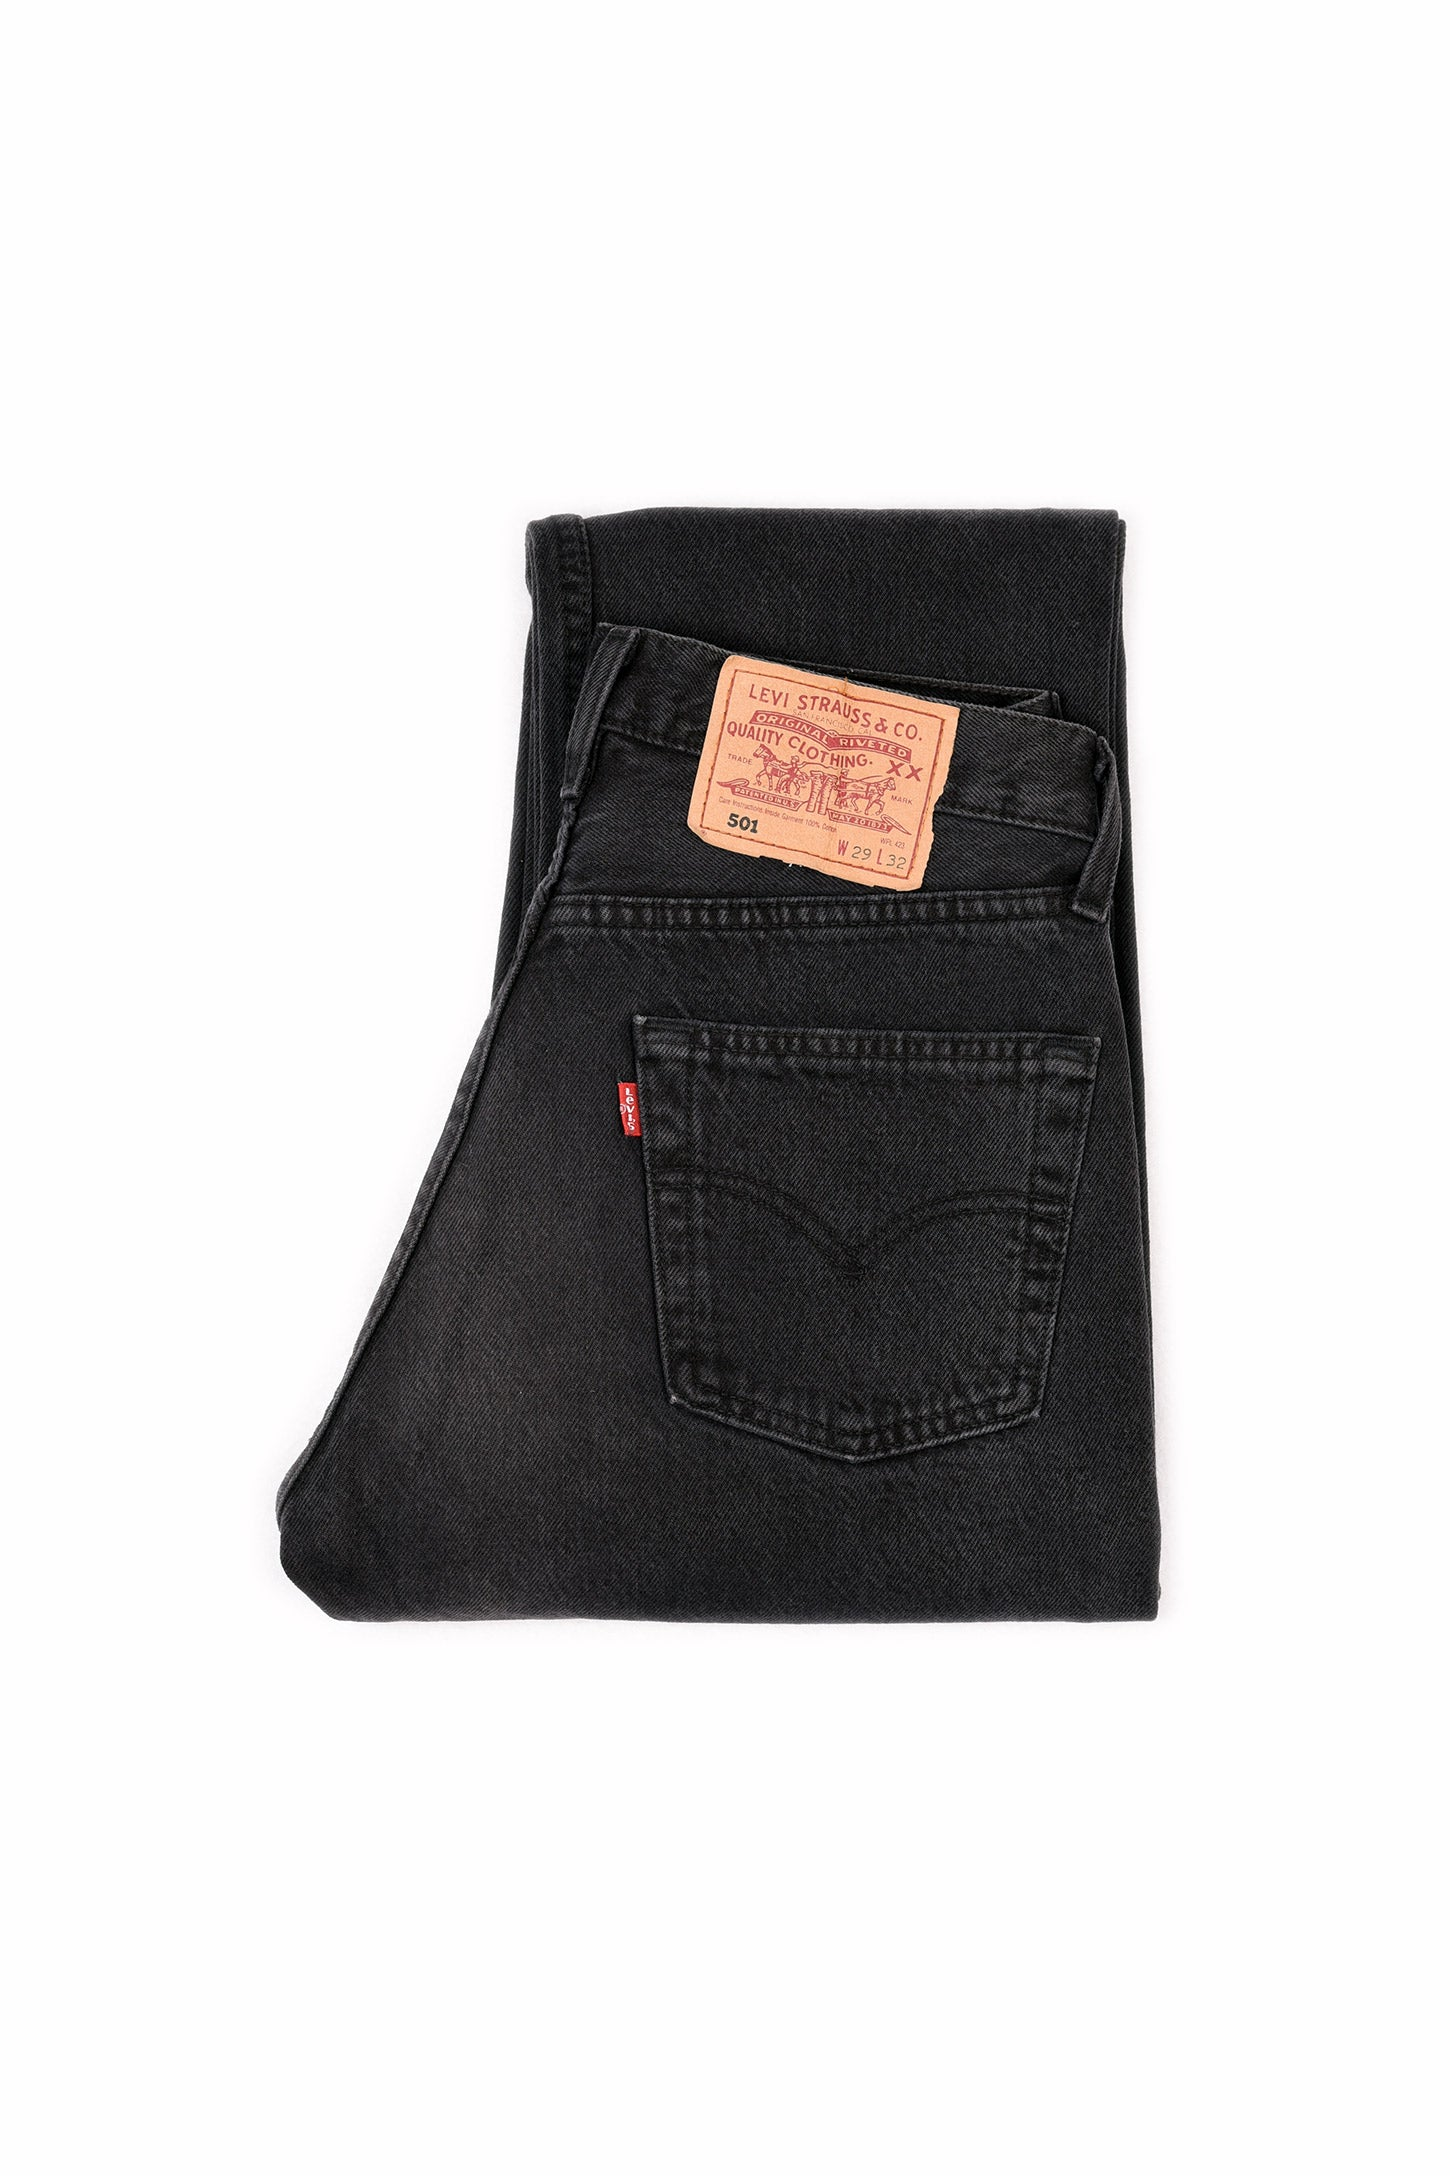 Second Hand - LEVI'S 501 ORIGINAL FIT JEANS BLACK - FRÅN Ö TILL A